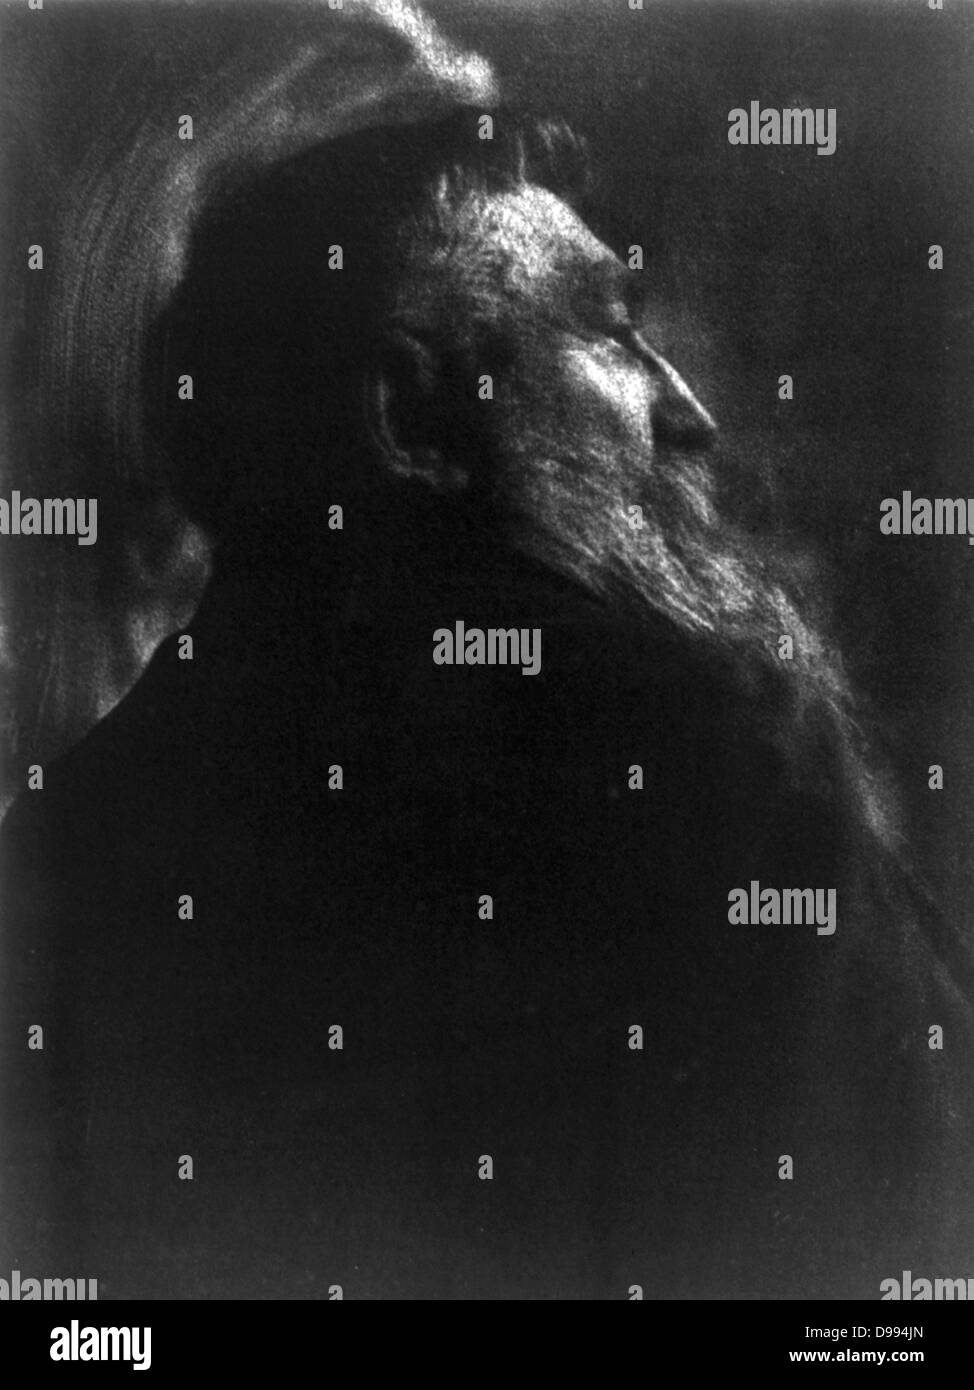 Portrait photograph of French sculptor Auguste Rodin (1840-1917) by Gertrude Kasebier (1852-1934) - Stock Image